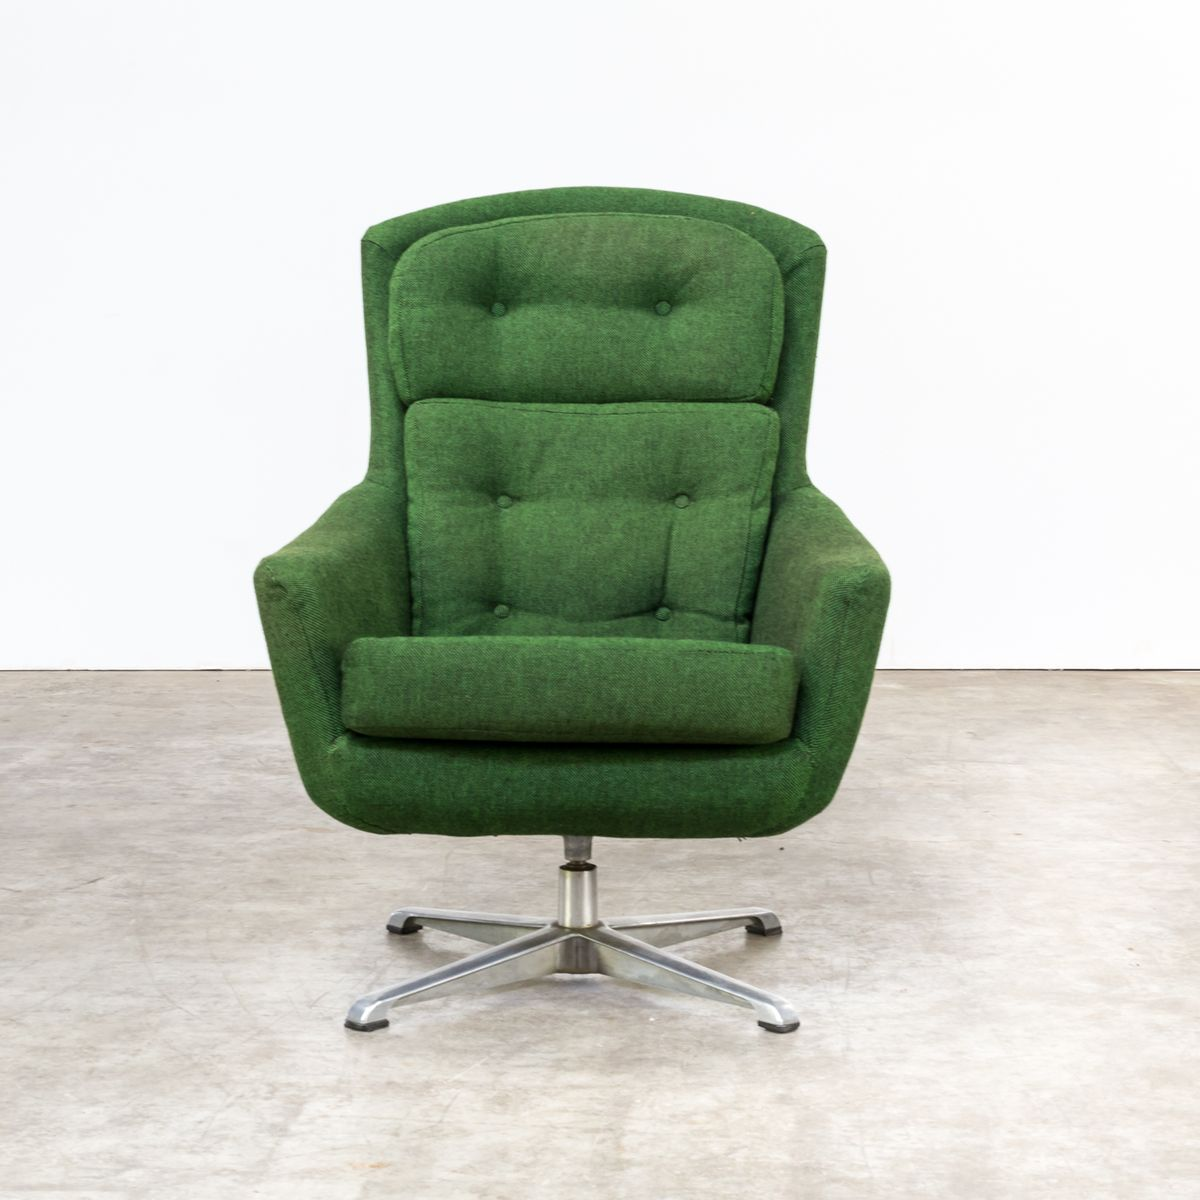 swivel chair sale uk mat for wood floors lounge 1970s at pamono